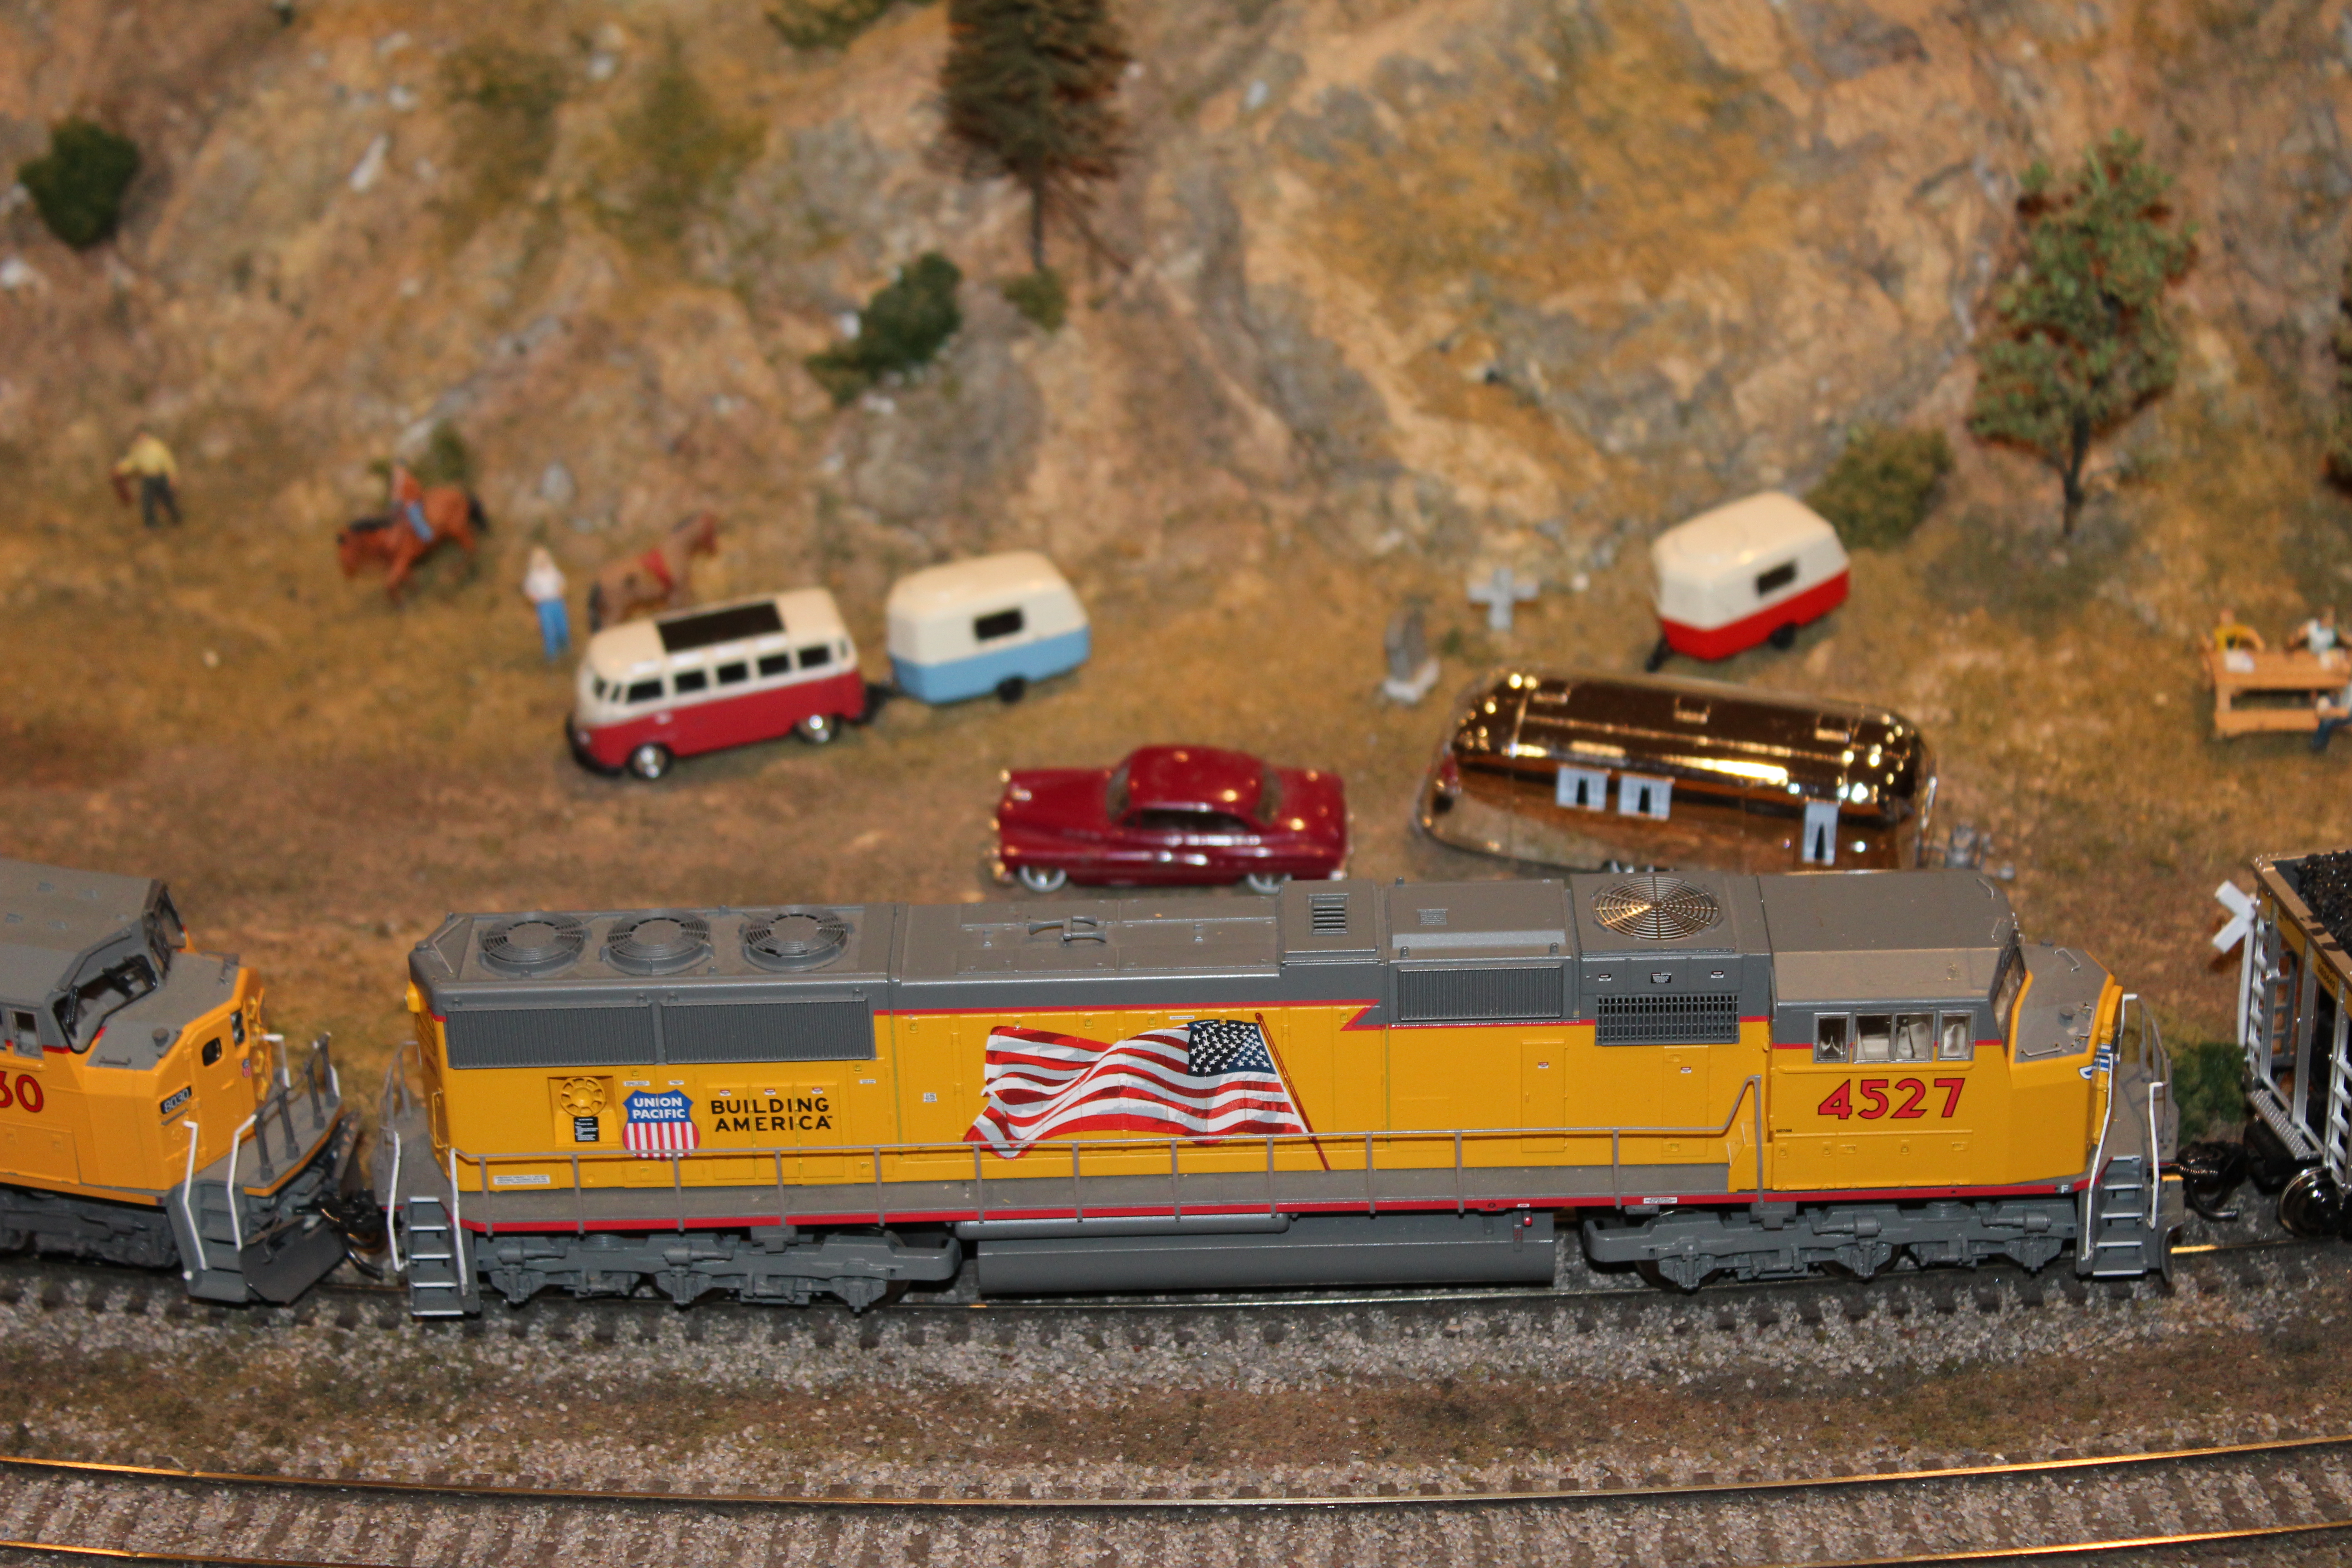 Spring Creek Model Railroad Club